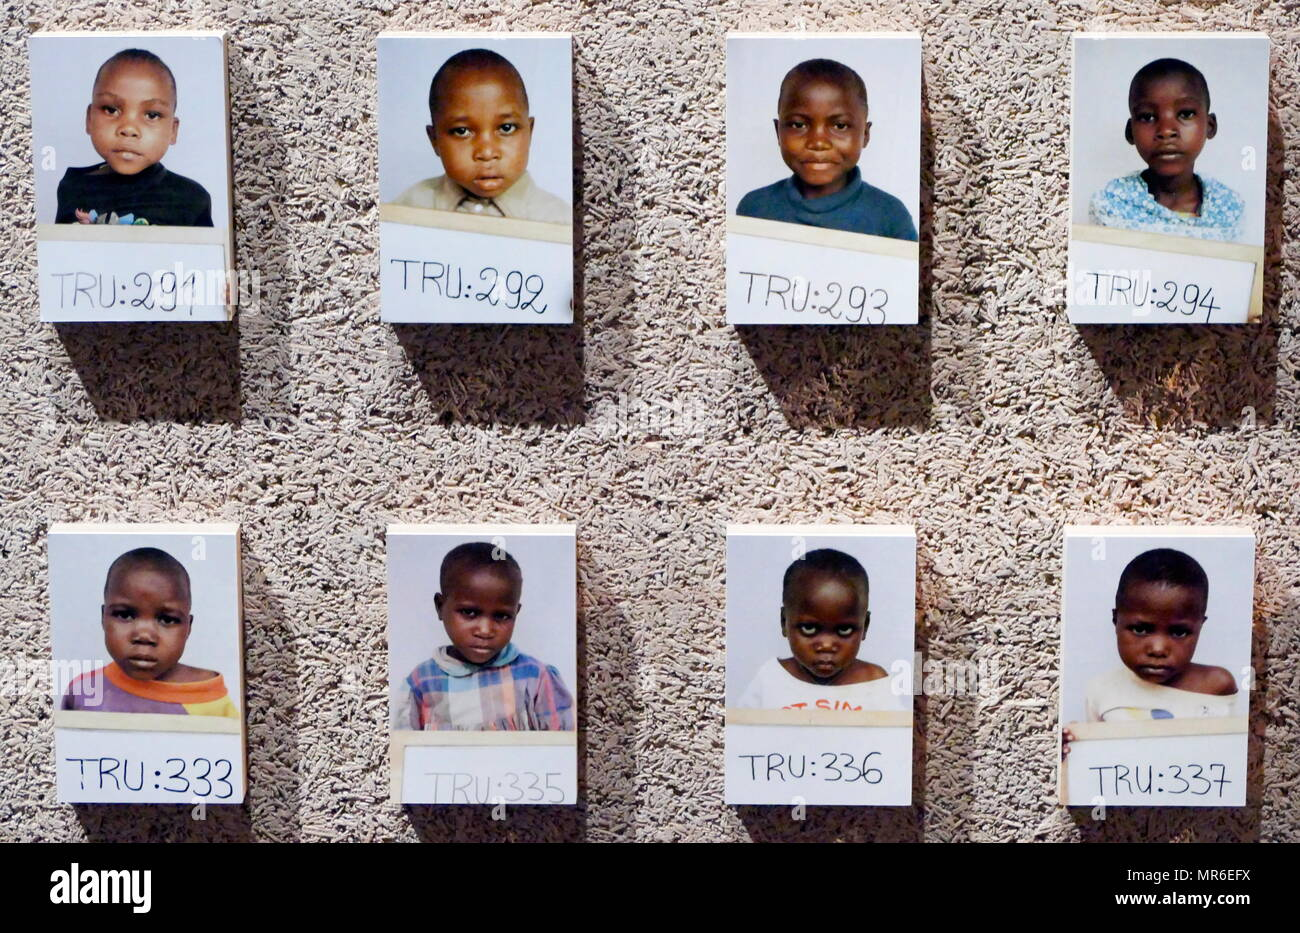 photograph of children separated from their families during the 1994 Rwanda Genocide. This was a genocidal mass slaughter, of Tutsi tribal people, in Rwanda, by members of the Hutu majority. An estimated 500,000–1,000,000 Rwandans were killed during the 100-day period from April 7 to mid-July 1994. - Stock Image